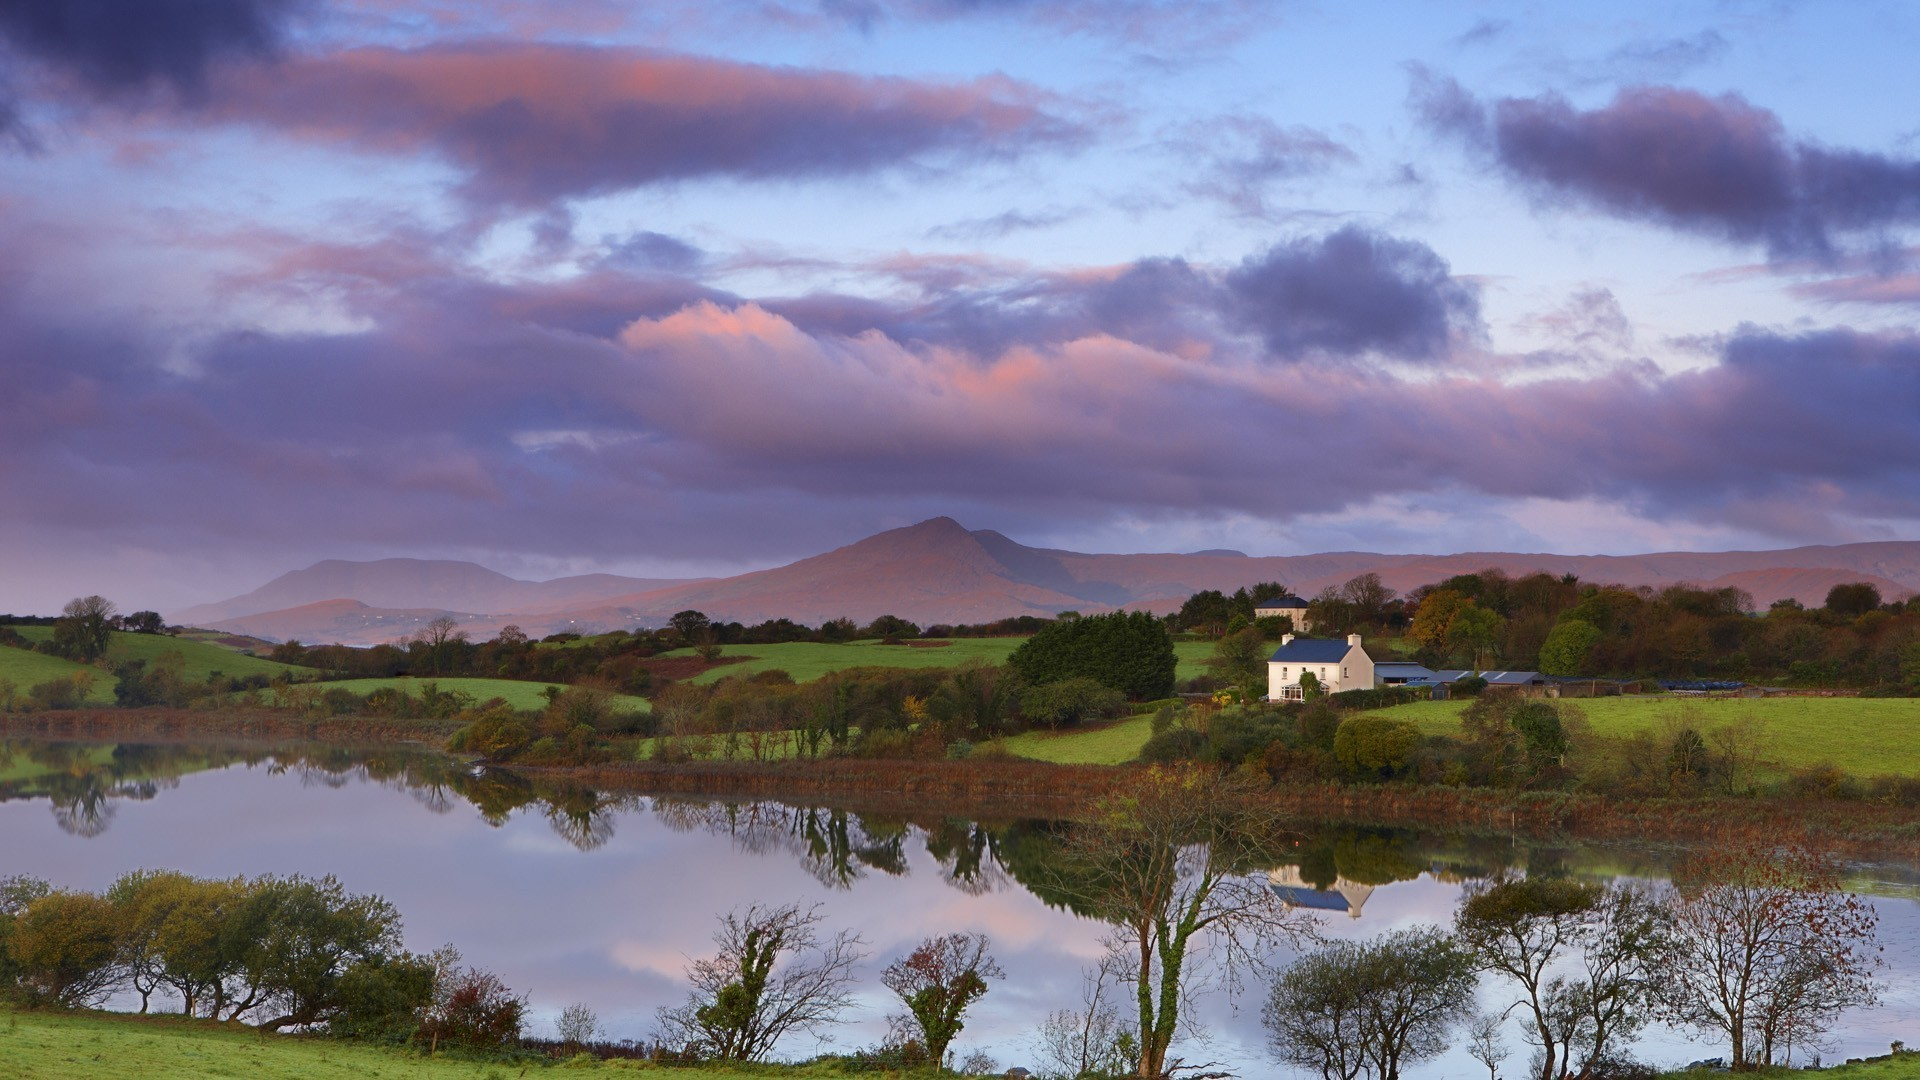 Res: 1920x1080, Lake on a farm in ireland wallpaper